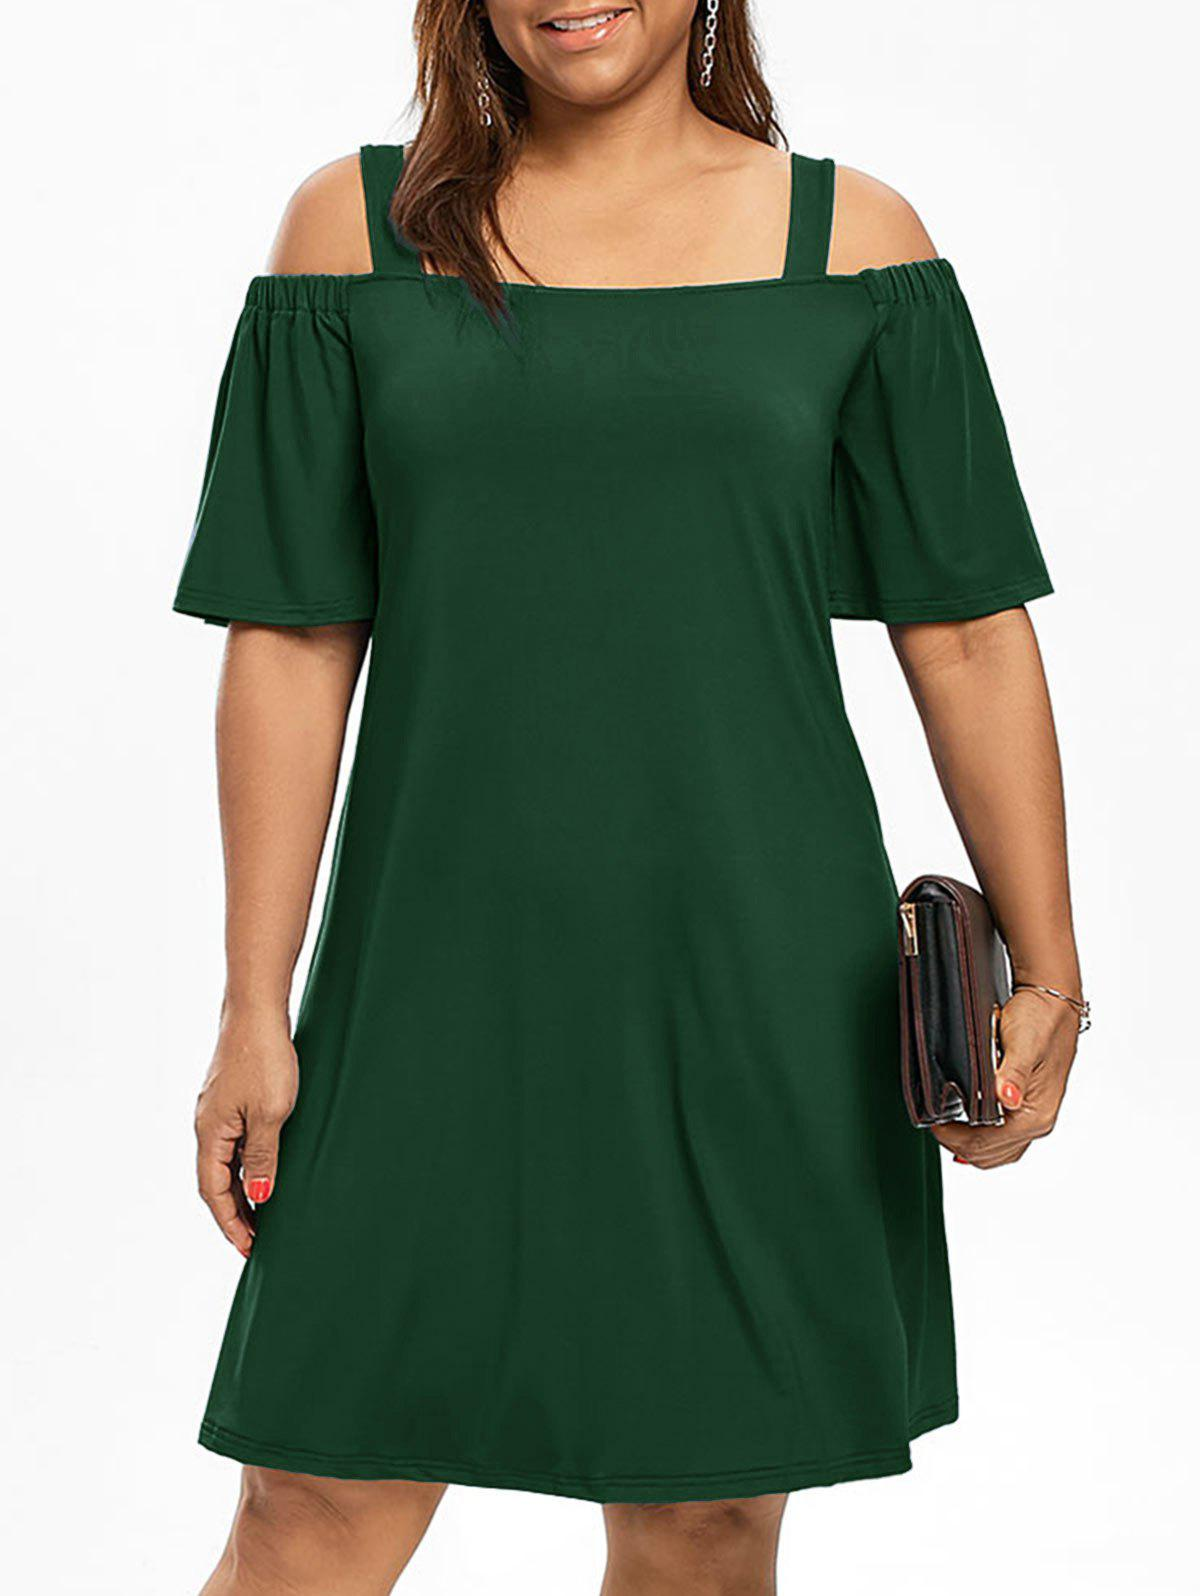 Cold Shoulder Half Sleeve Plus Size DressWOMEN<br><br>Size: XL; Color: BLACKISH GREEN; Style: Brief; Material: Polyester,Spandex; Silhouette: A-Line; Dresses Length: Knee-Length; Neckline: Square Collar; Sleeve Type: Flare Sleeve; Sleeve Length: Half Sleeves; Waist: Natural; Pattern Type: Solid Color; Elasticity: Elastic; With Belt: No; Season: Fall,Spring; Weight: 0.3200kg; Package Contents: 1 x Dress;